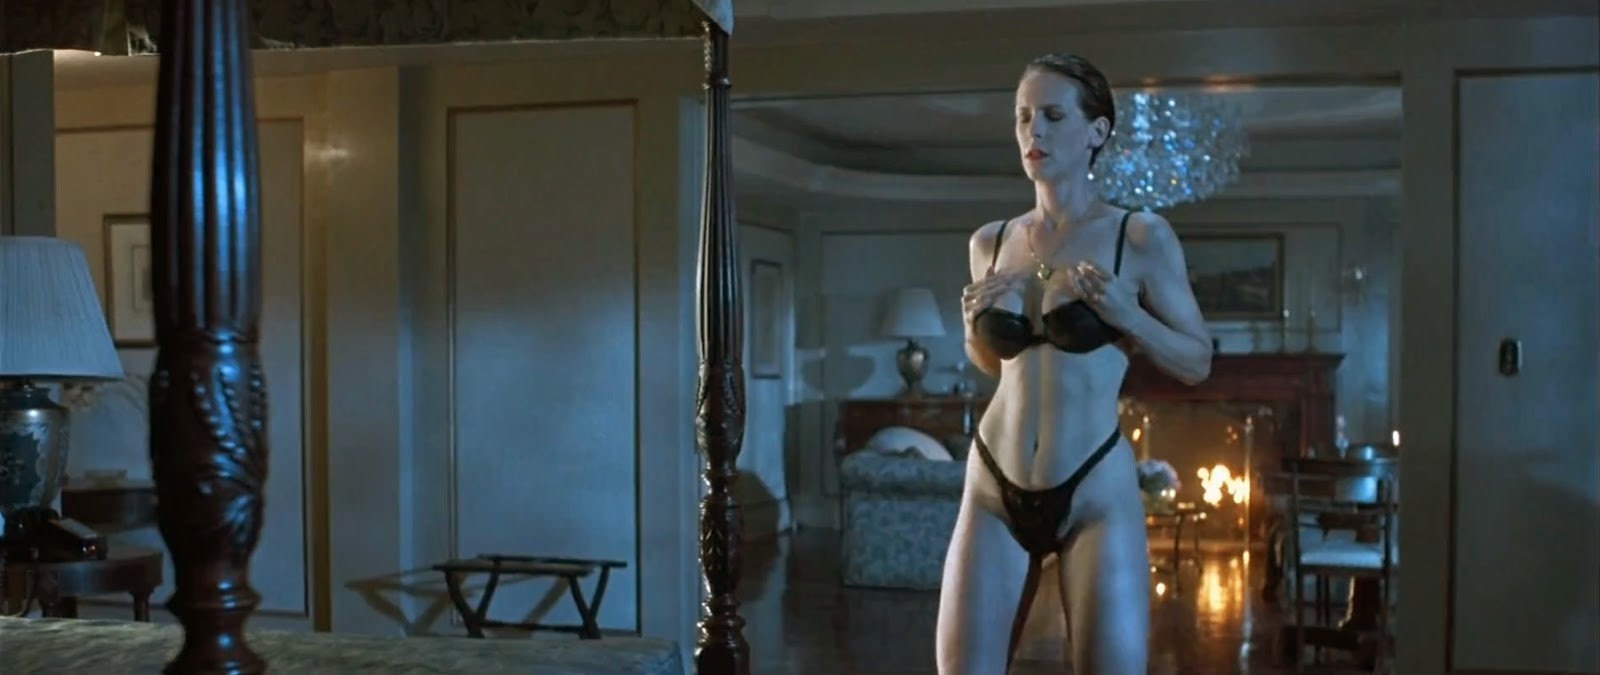 jamie lee curtis true lies strip safekeeping